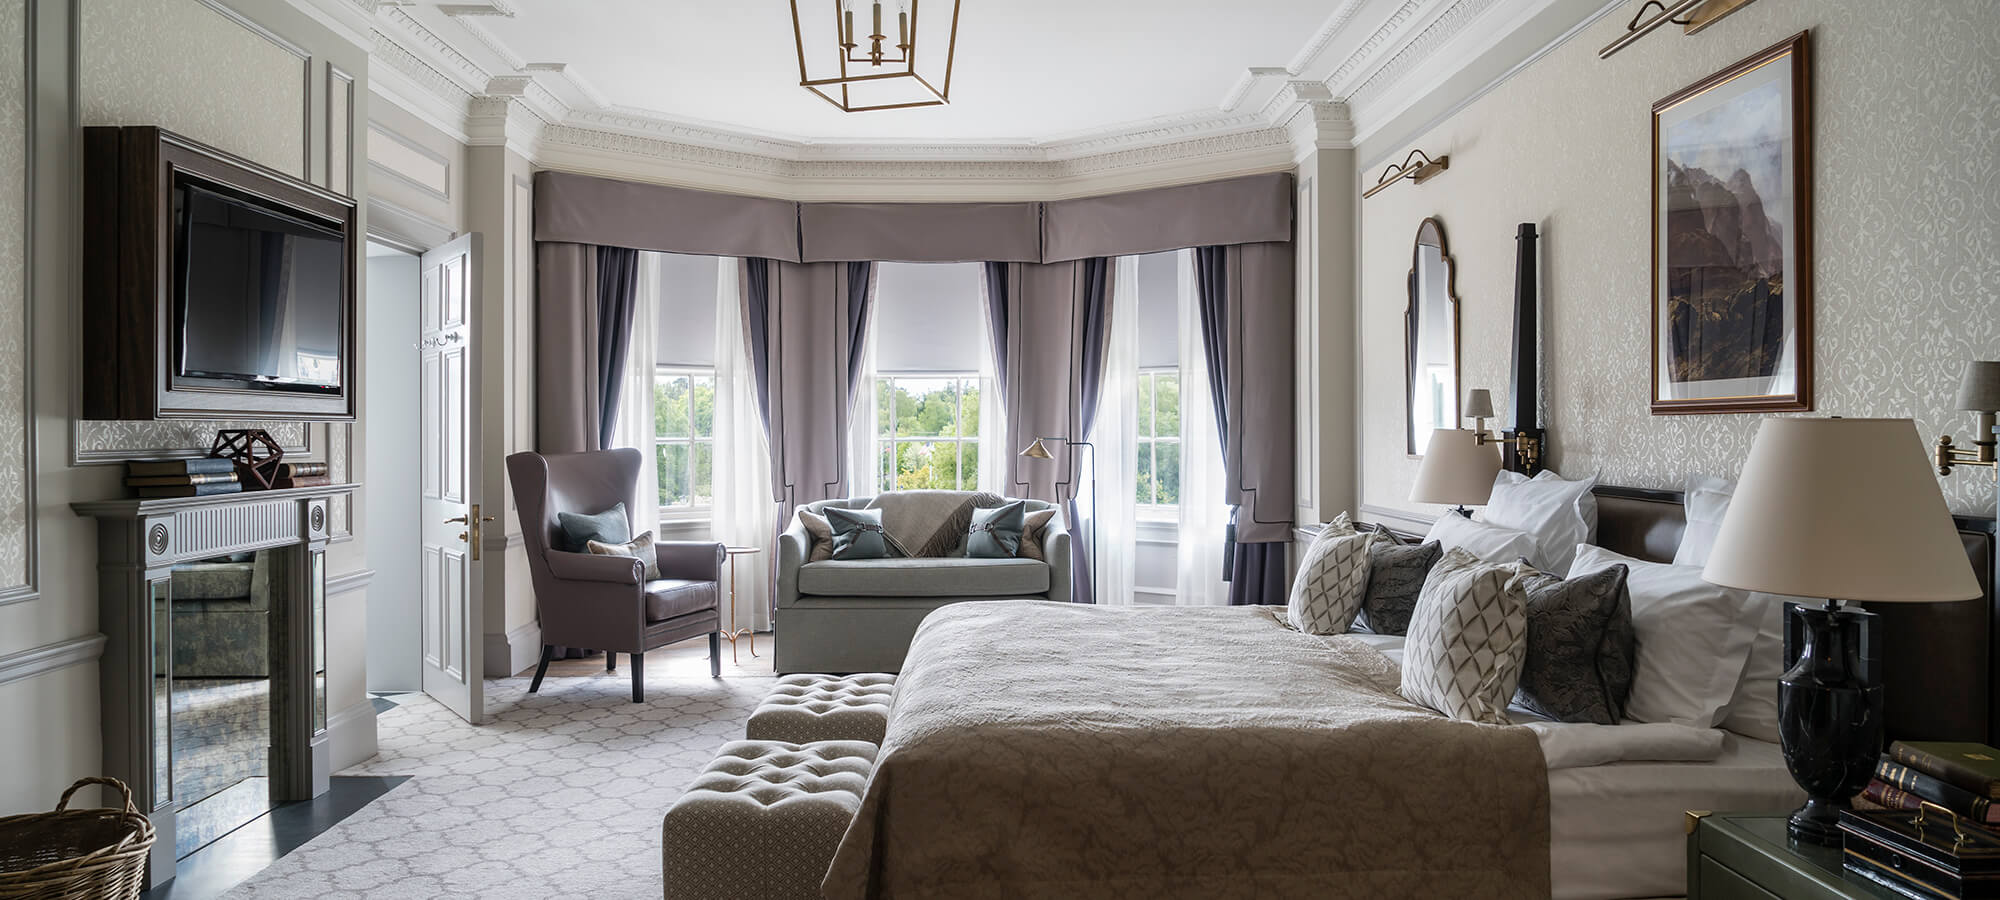 A large Estate bedroom with bay window, king sized bed and ample seating